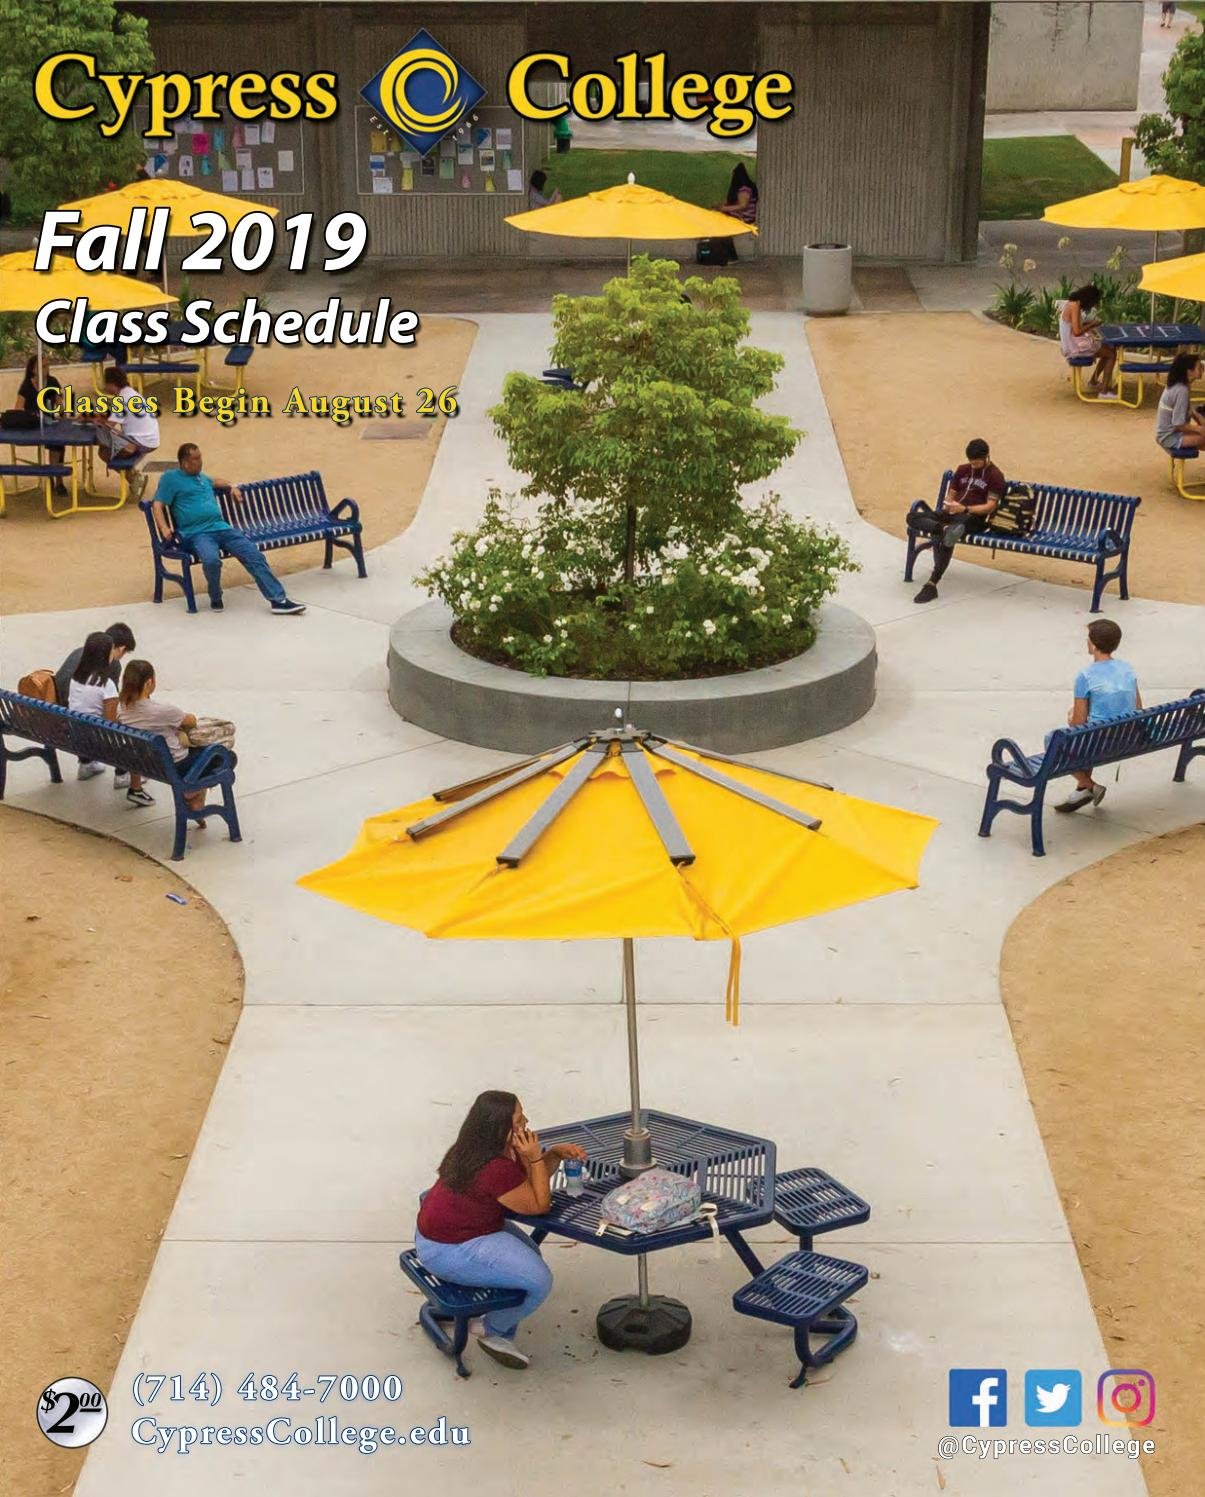 Cypress College Fall 2019 Schedule of Classes by Cypress College - issuu